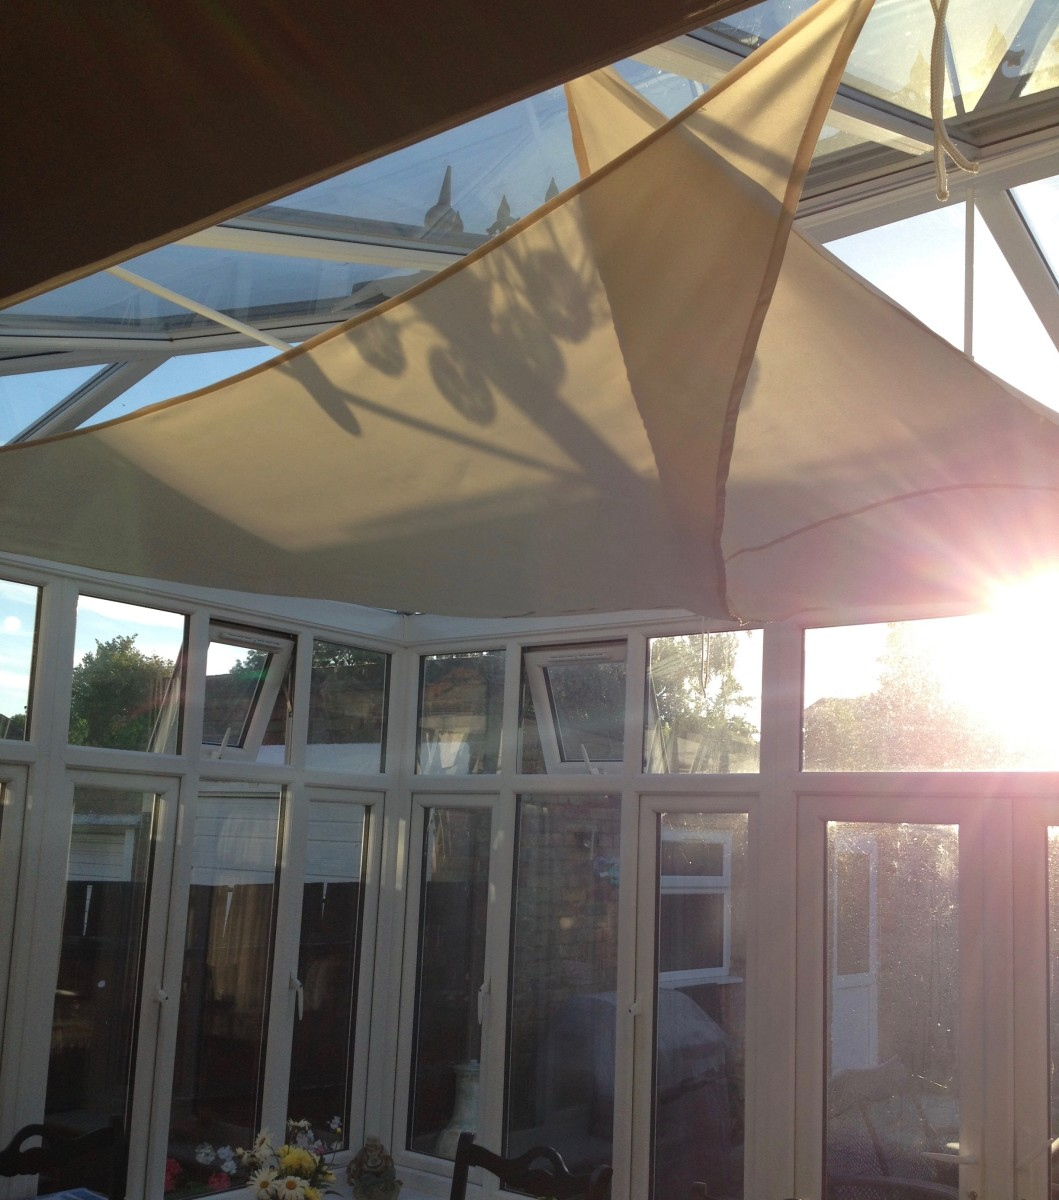 Sails make great shading inside a conservatory room